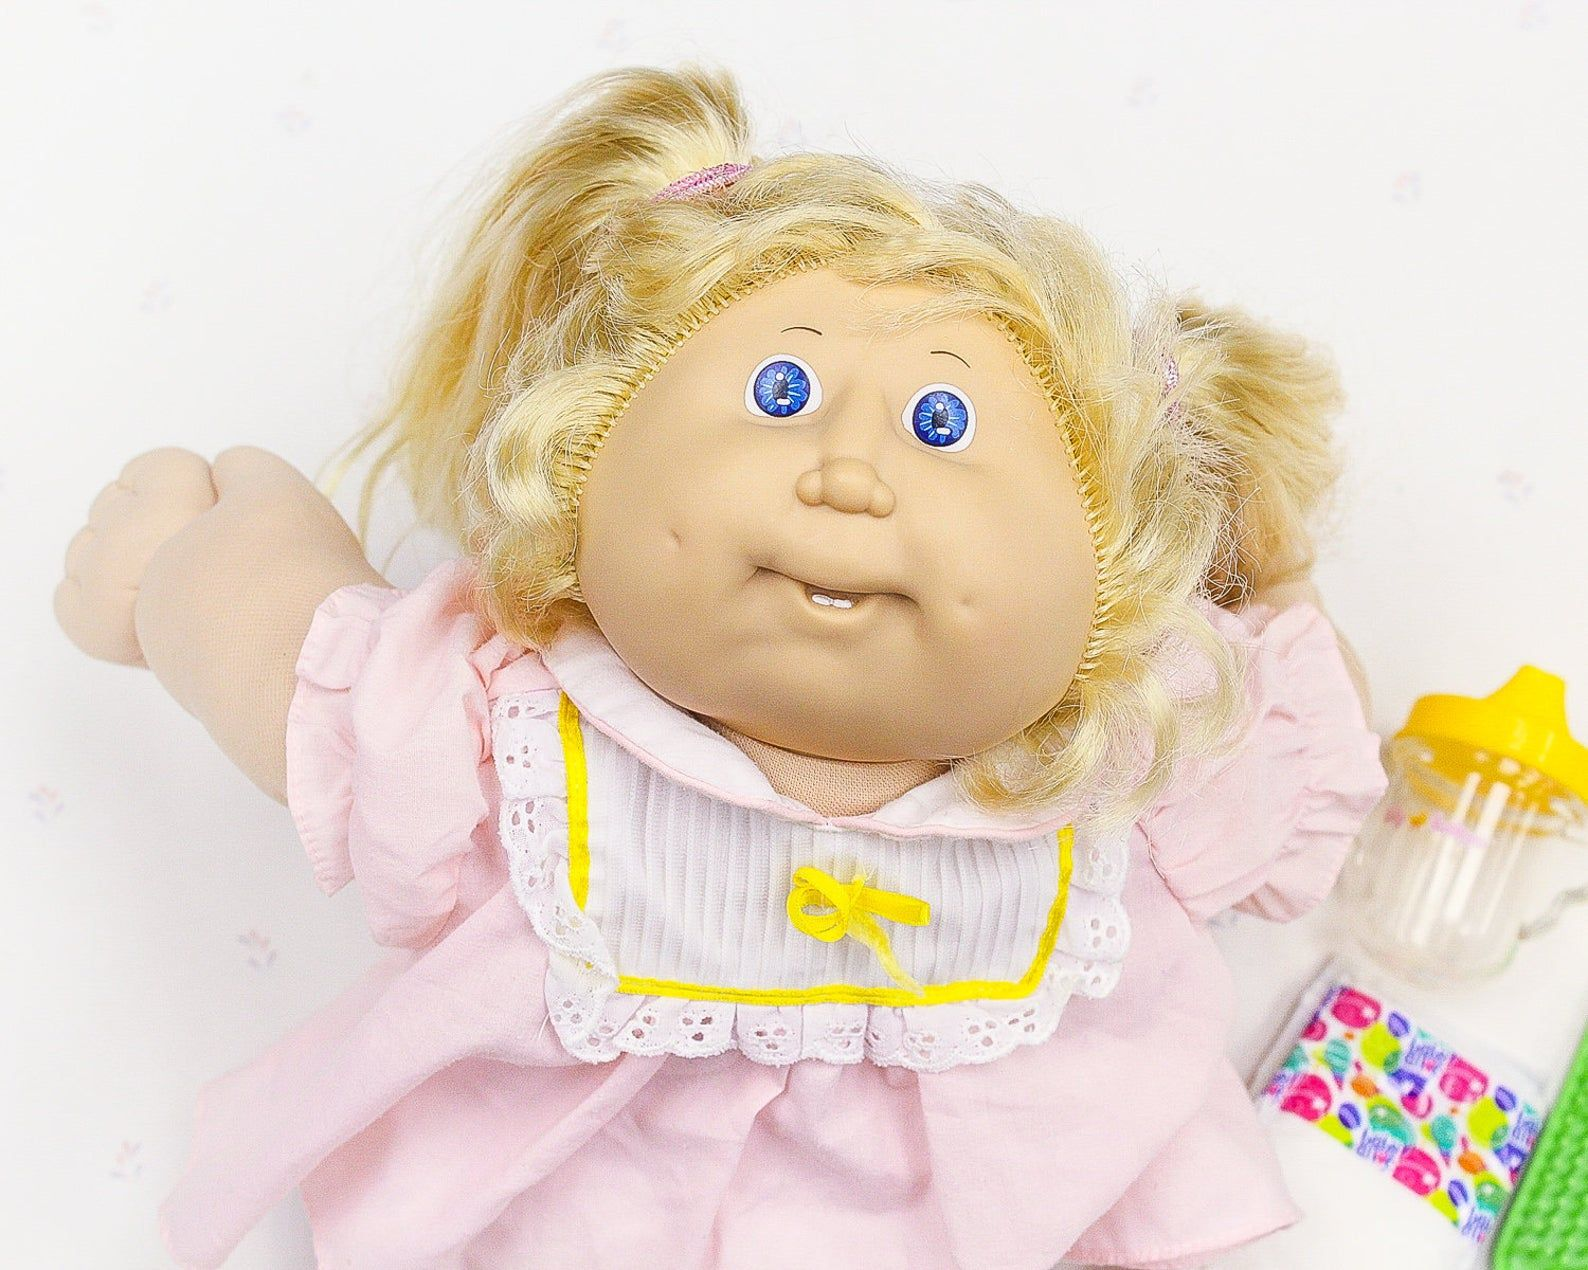 1980s Cabbage Patch Doll Cornsilk Hair Girl Doll Cabbage Patch Kids Doll For Girl 80s Toys For Kid Vintage Toy Doll For Kid 80s Doll Cabbage Patch Kids Dolls Cabbage Patch